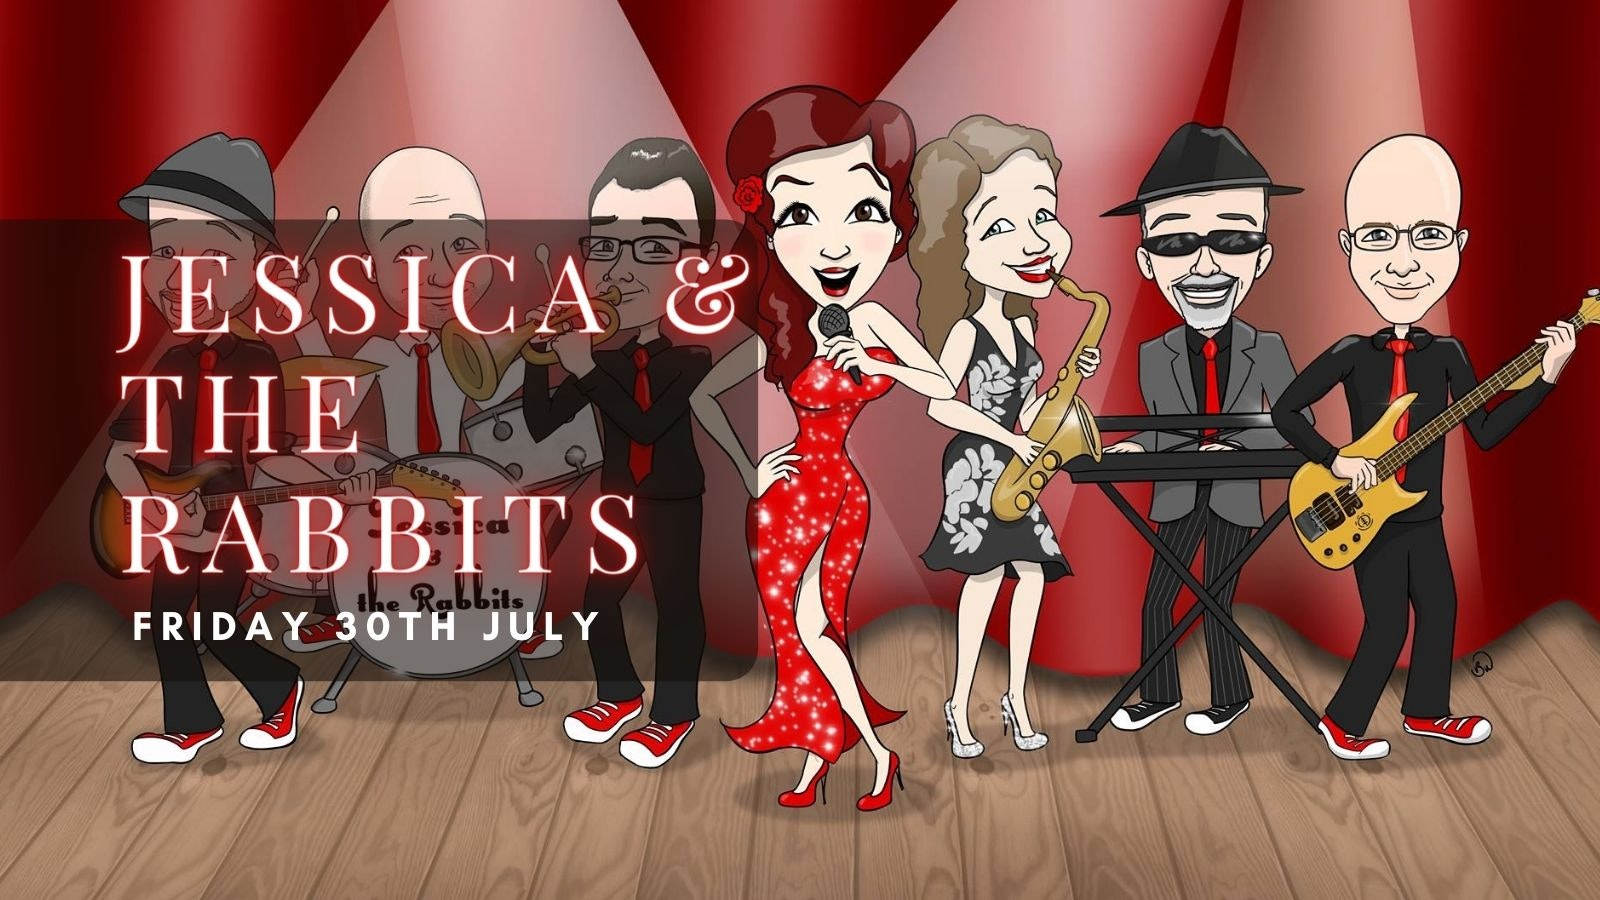 JESSICA AND THE RABBITS | Plymouth, Annabel's Cabaret & Discotheque